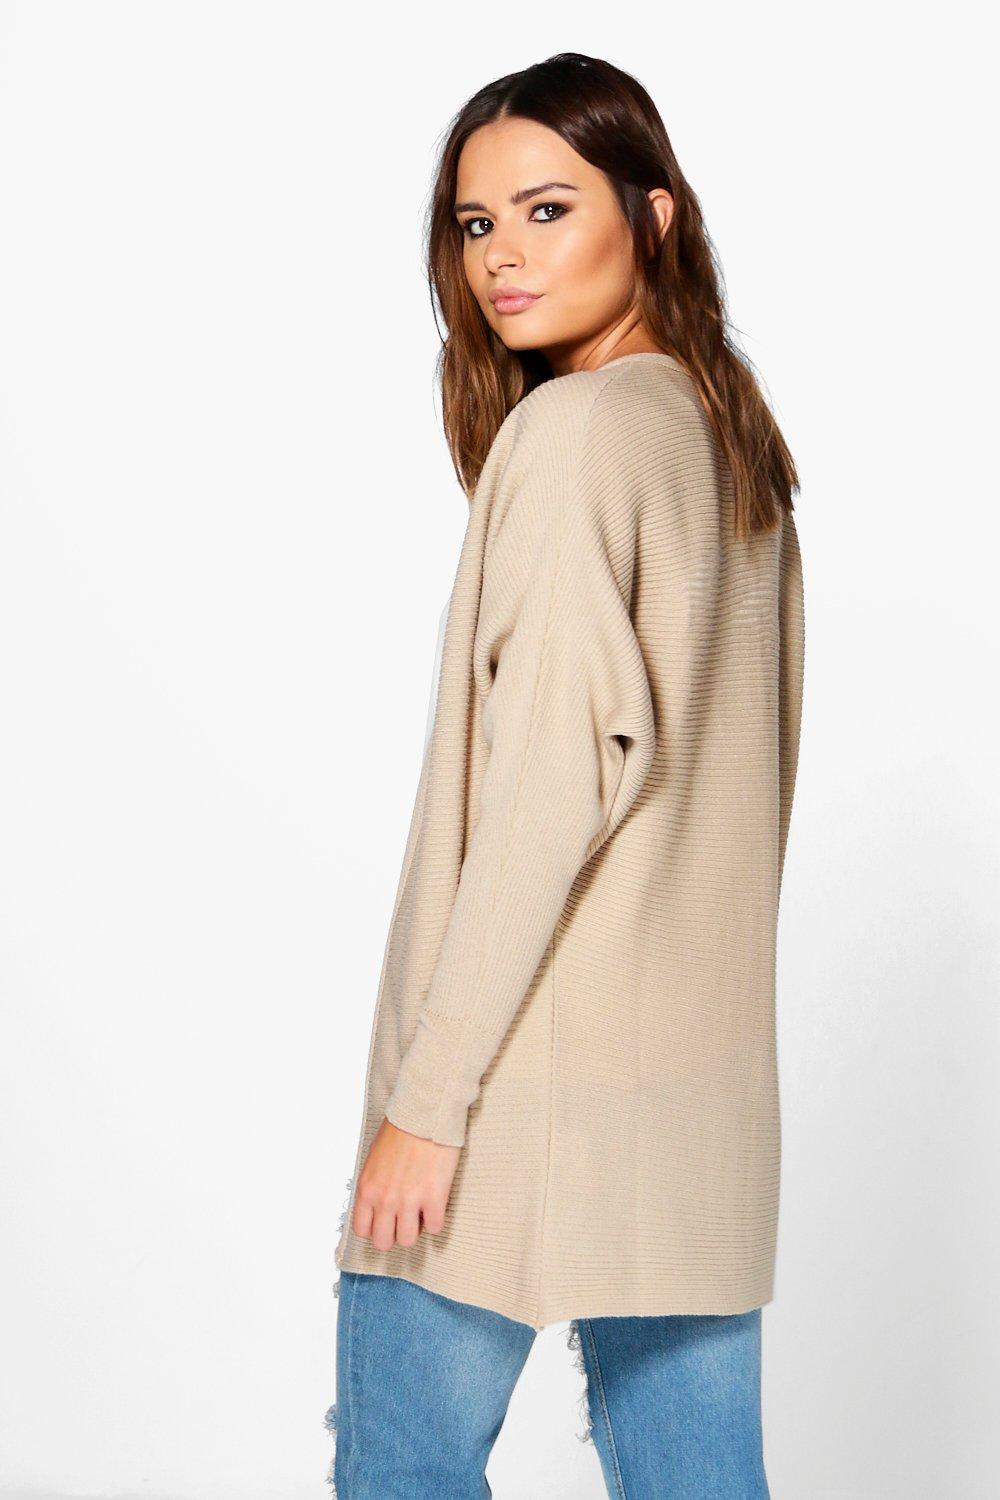 Boohoo Womens Keira Rib Knit Edge To Edge Batwing Cardigan